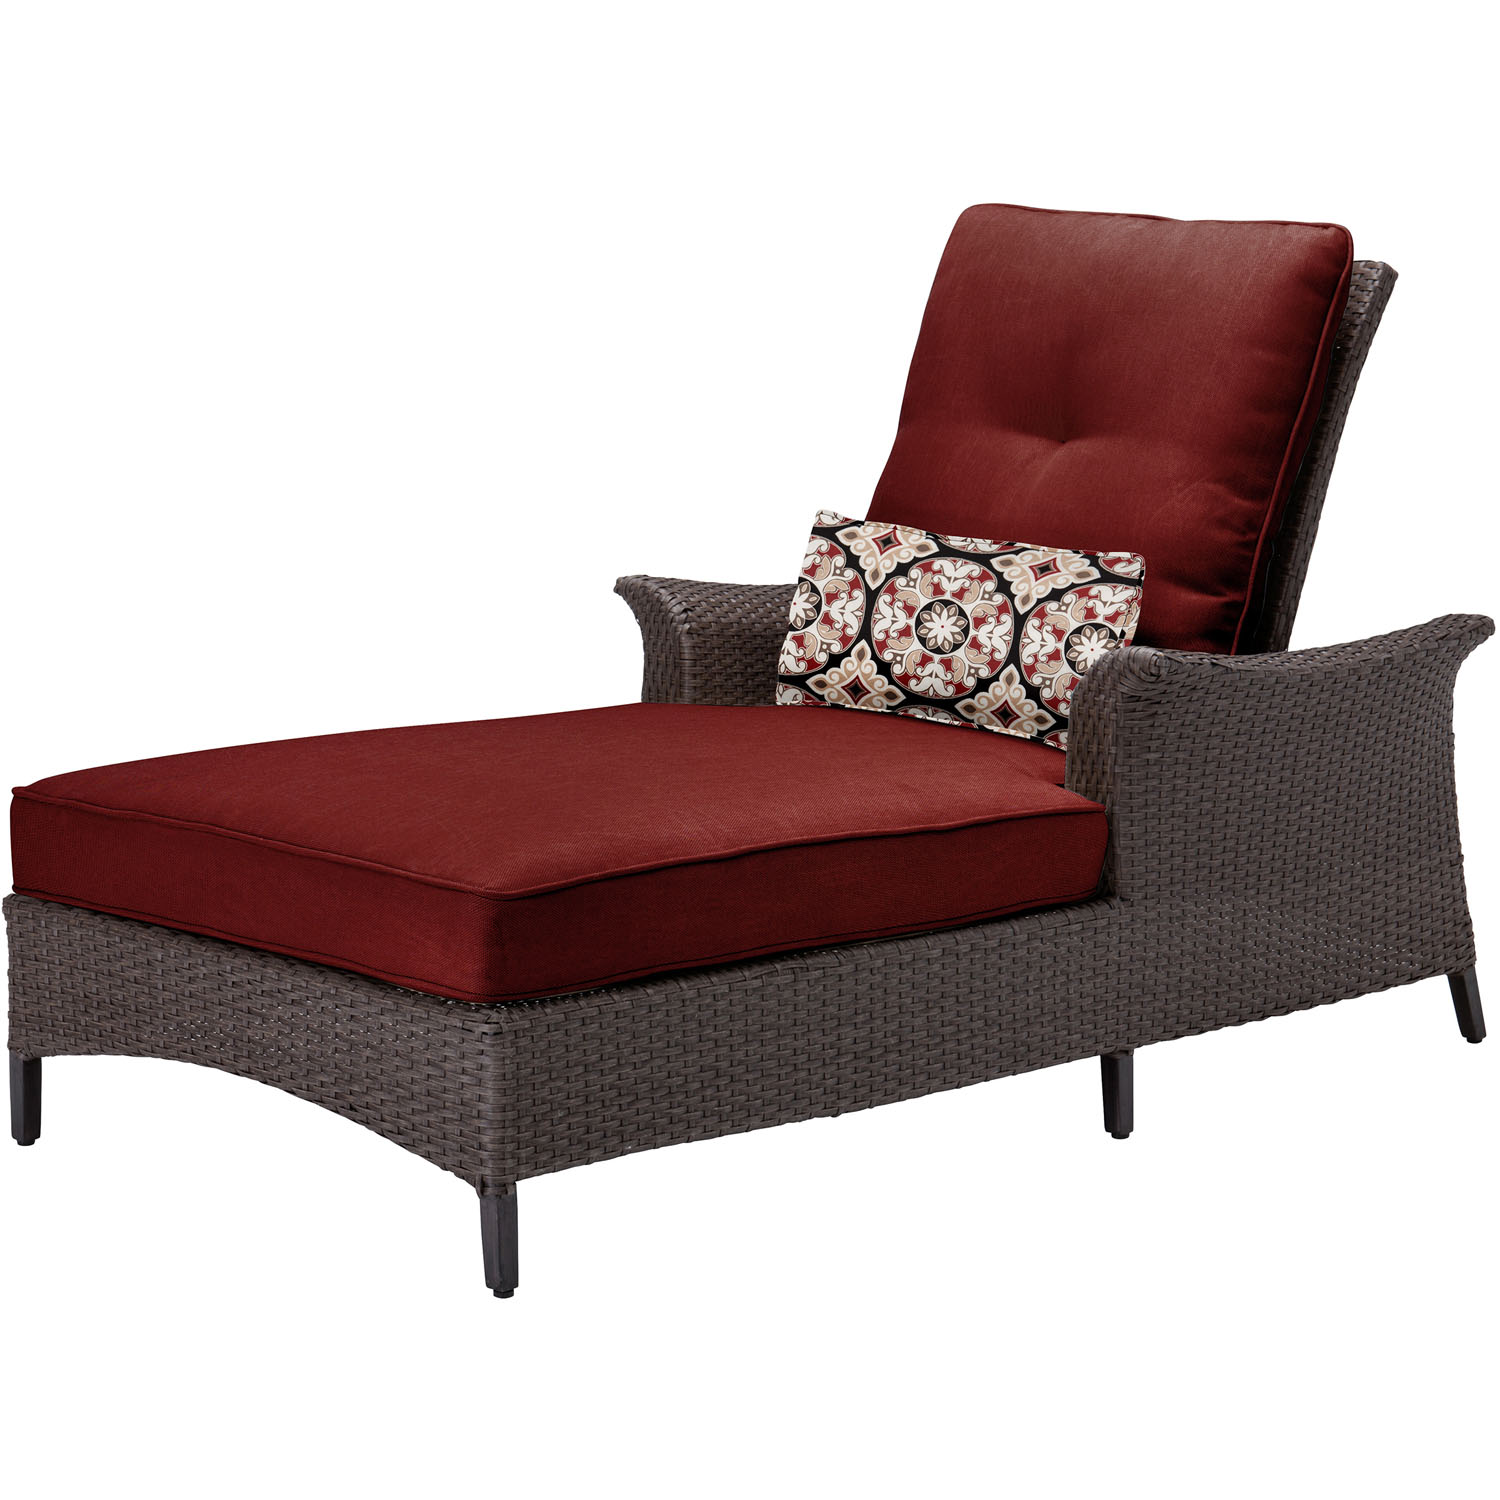 Hanover Gramercy Woven Chaise Lounge Chair with Crimson Red Cushions and Lumbar Accent Pillow